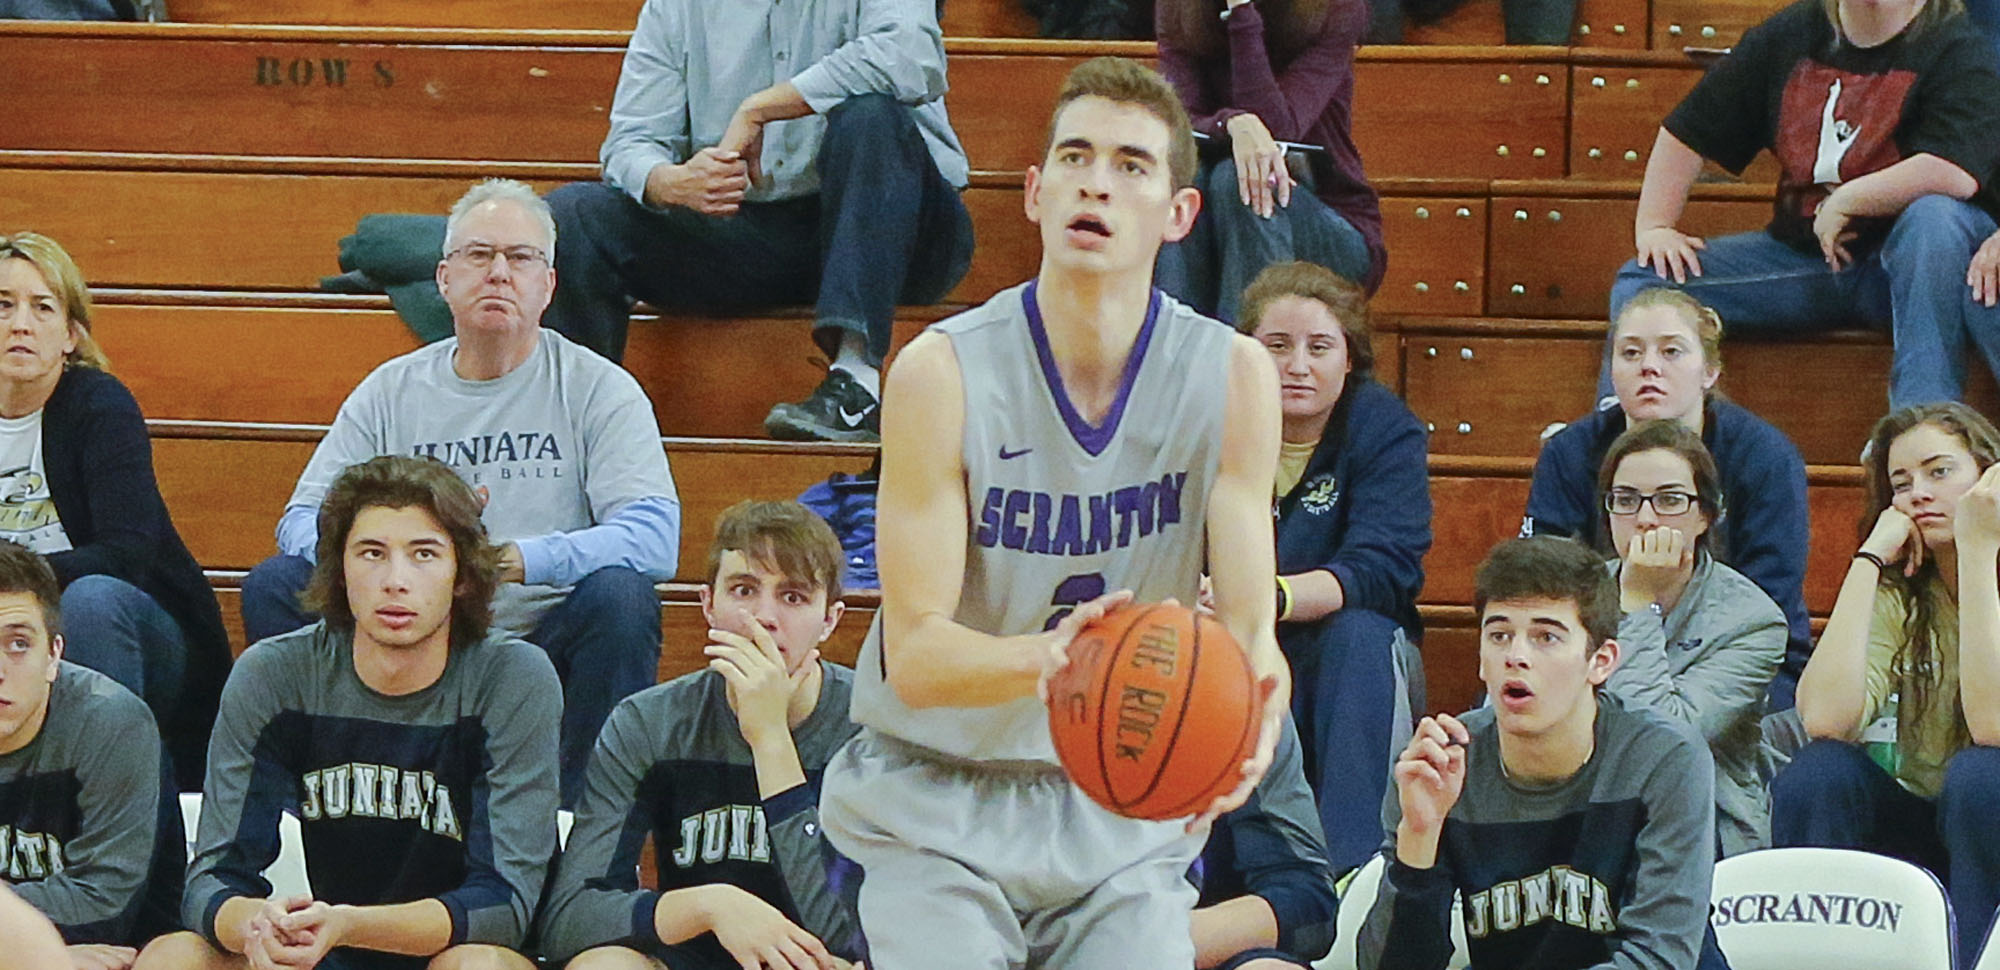 Junior guard Ethan Danzig hit six 3-pointers in Saturday's win over Catholic in the Long Center.